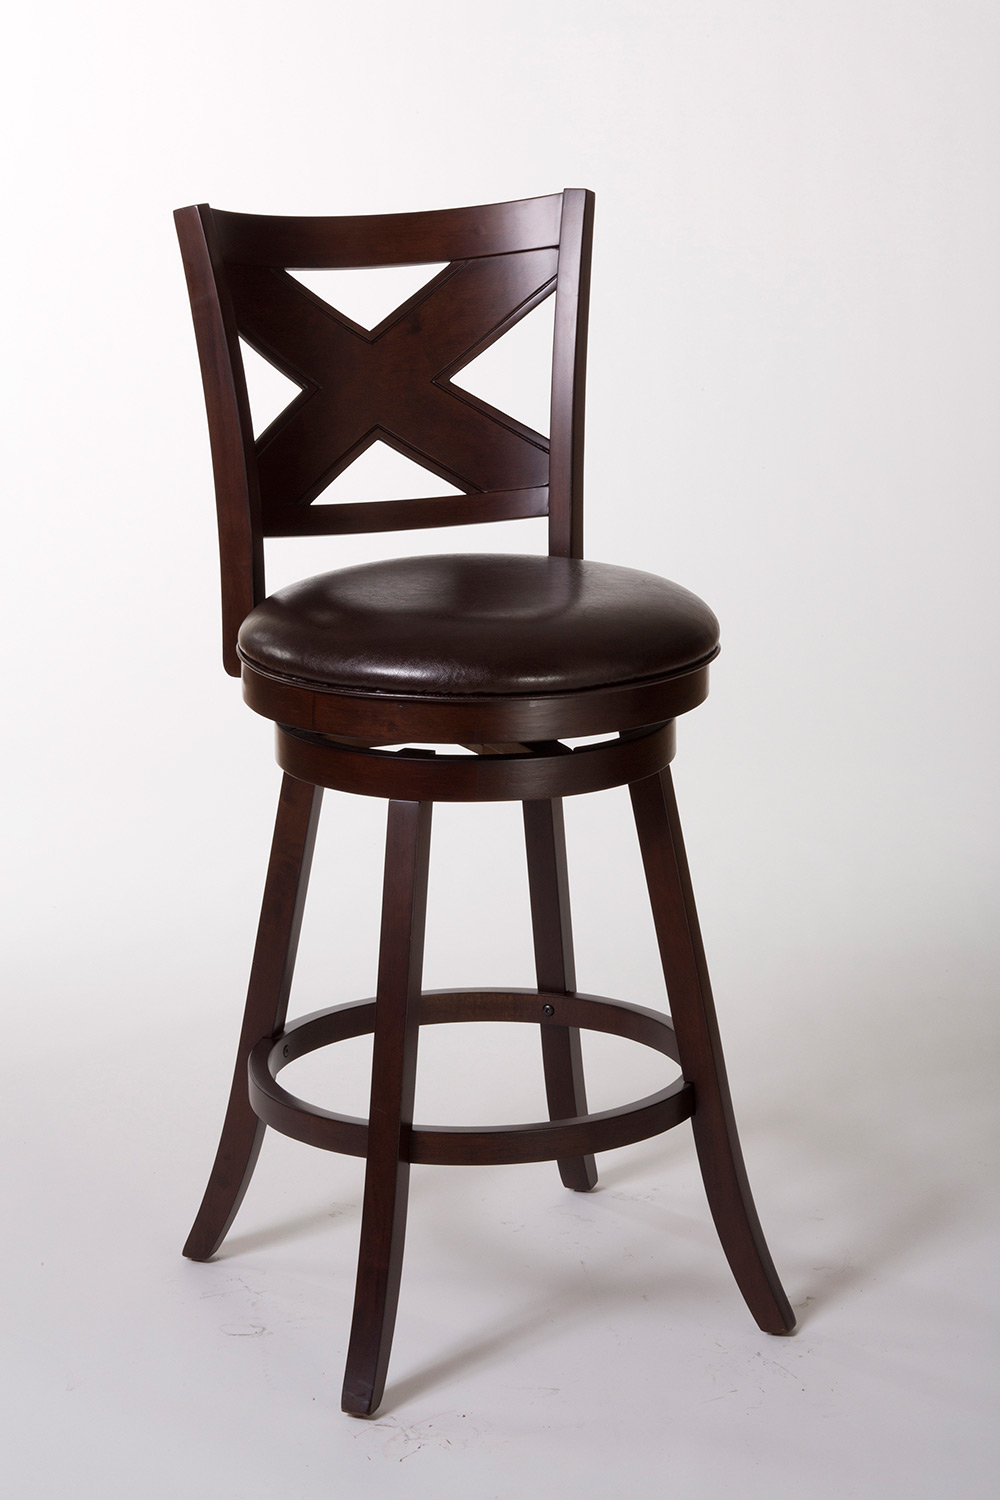 Hillsdale Ashbrook Swivel Counter Stool - Cherry/Brown PU